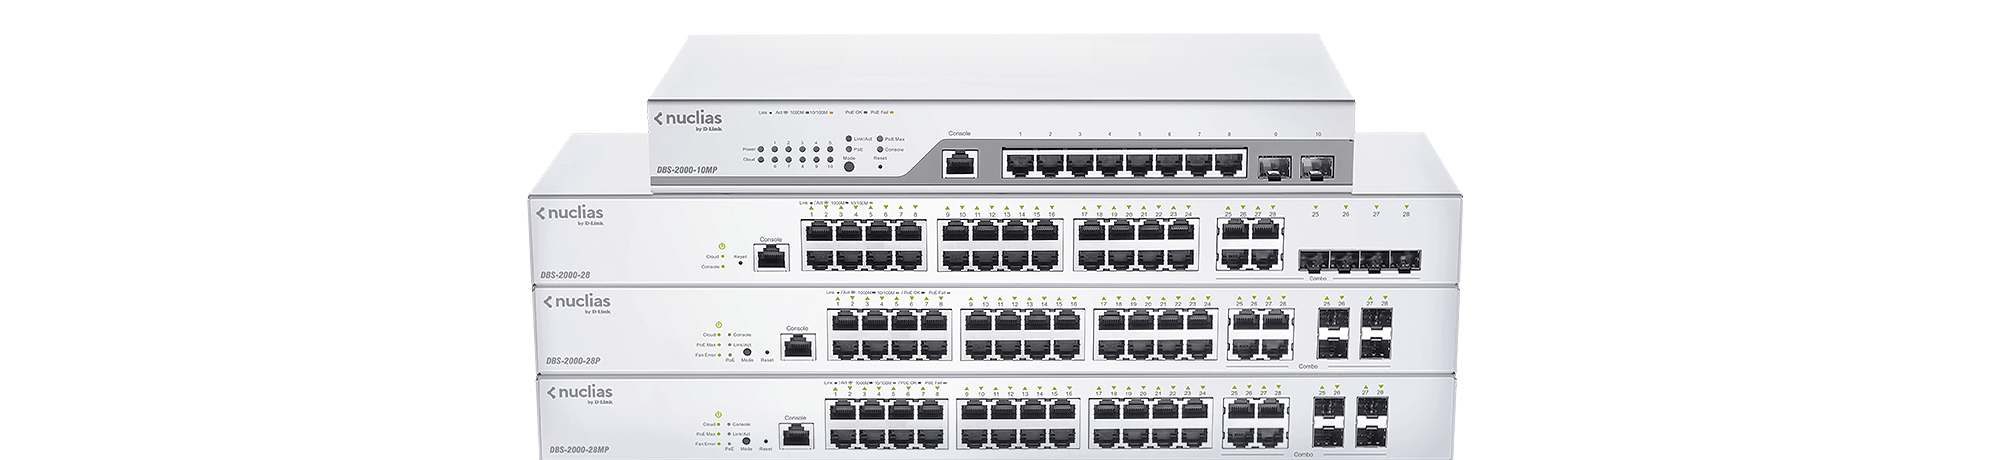 DBS-2000 Nuclias Cloud-Managed Switches 10MP, 28, 28P, 28MP, 52, 52MP